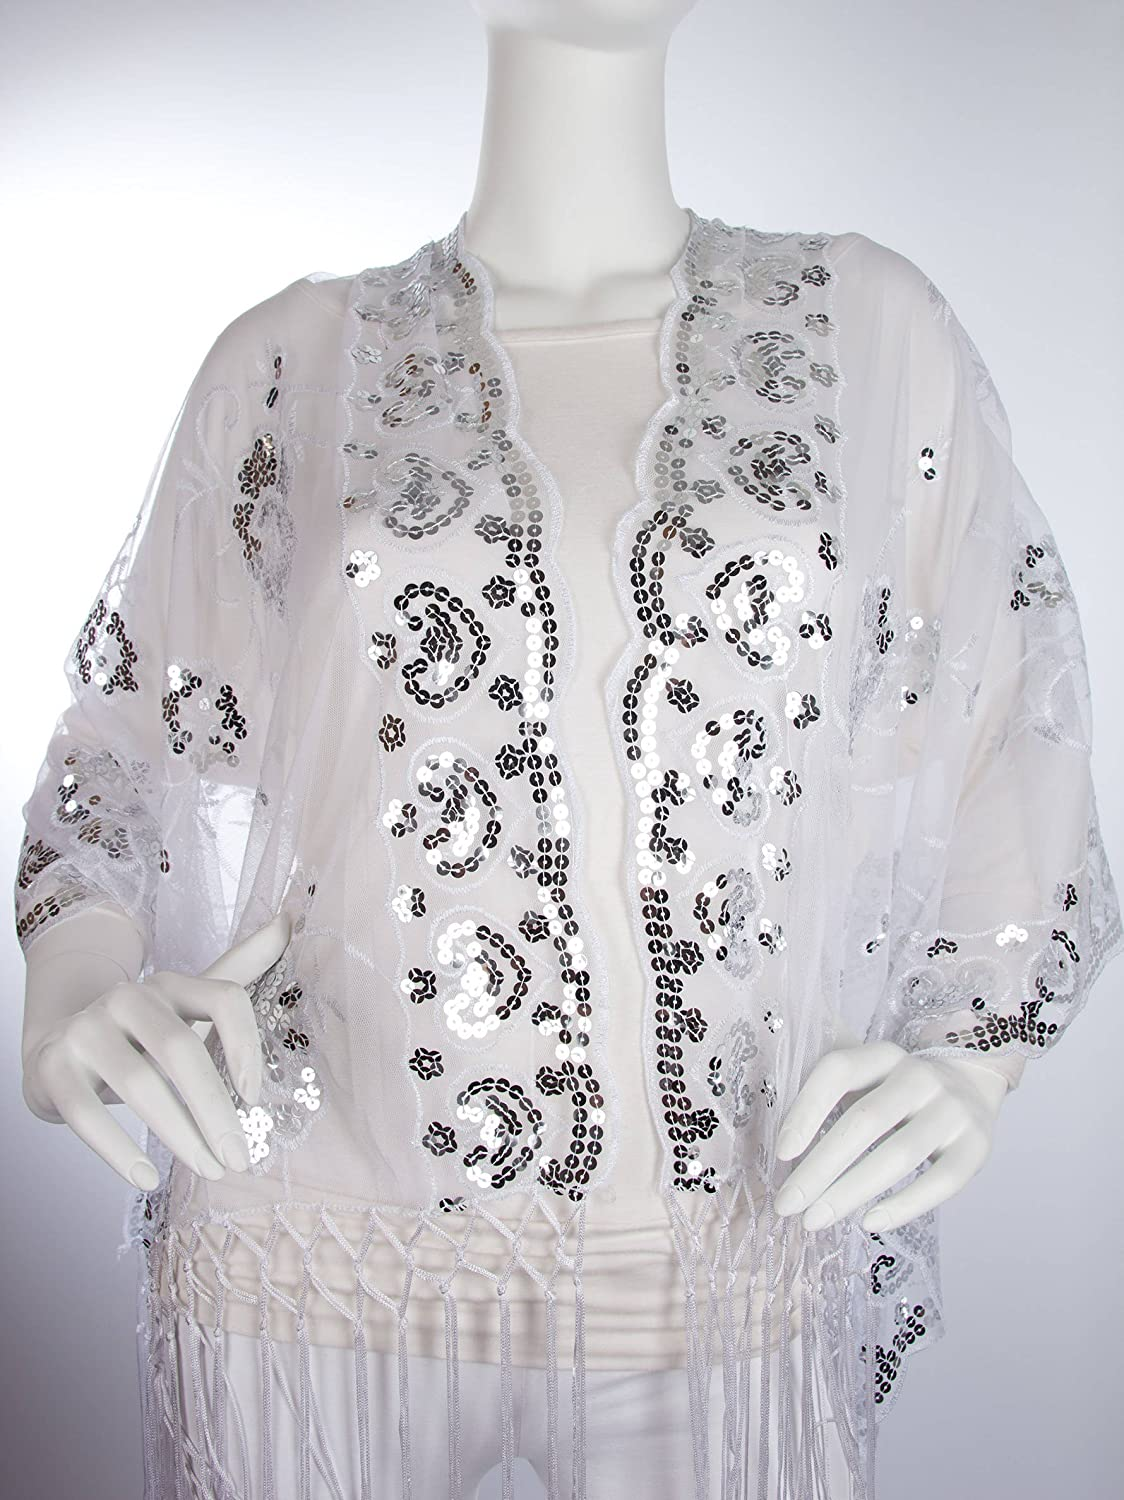 Vintage Scarf Styles -1920s to 1960s Madison Shawl Long Fringe Sequin Evening Wrap $16.95 AT vintagedancer.com